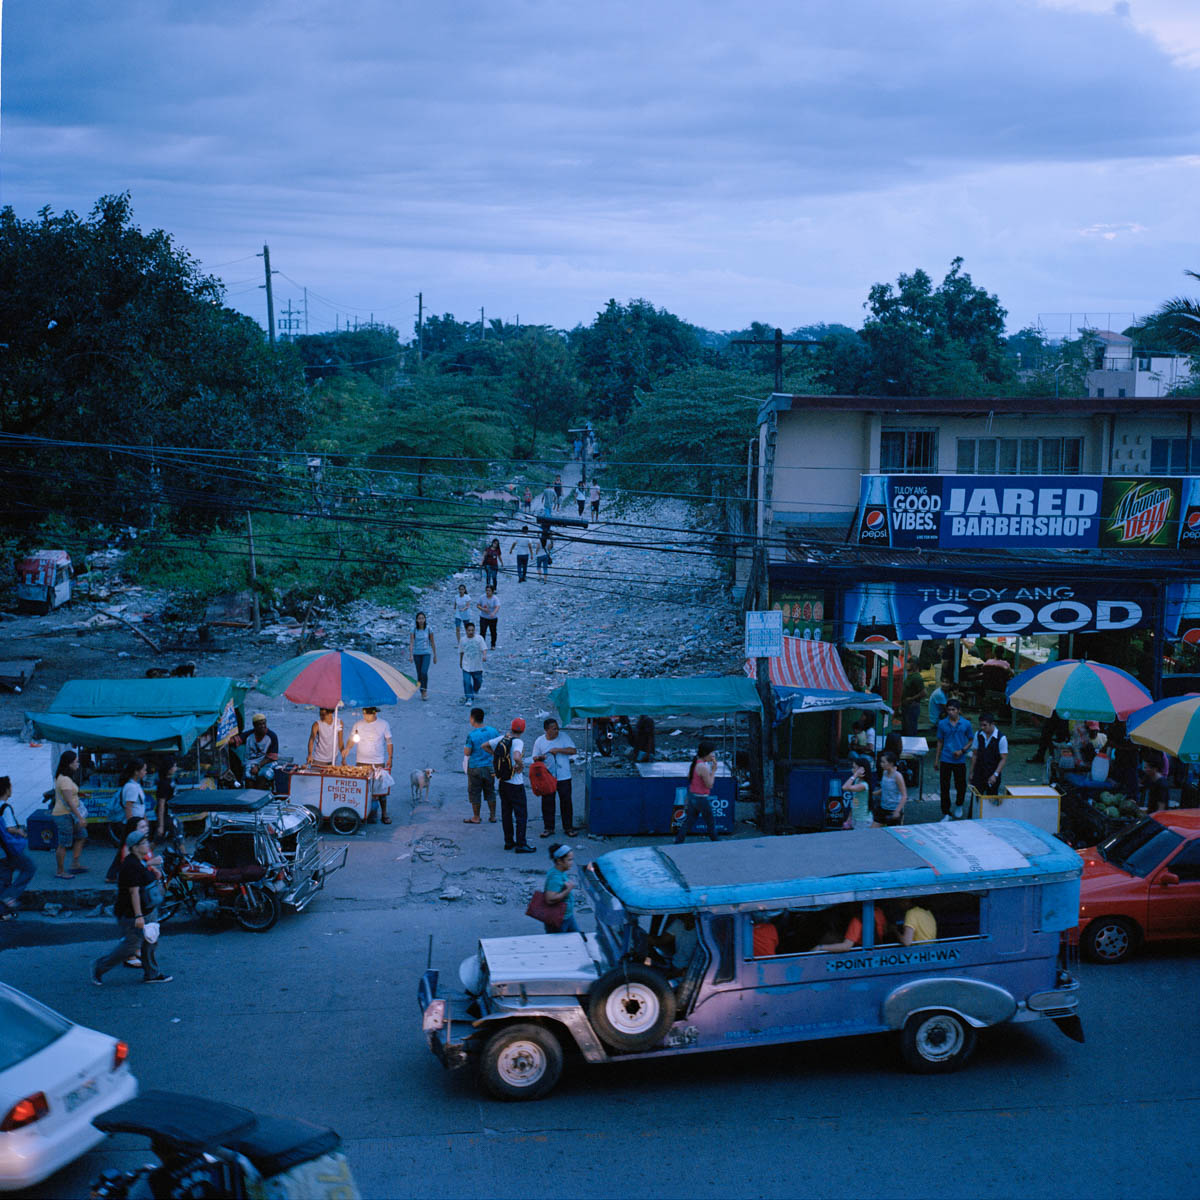 """Balibago at dusk - View from Balibago at dusk. The jeepneys are modified US army jeeps from World War II and transformed into long shared taxis. Jeepneys are the most popular means of public transportation in the Philippines. Angeles City, Philippines, August 2014. - Copyright © © S. Borcard - N. Metraux - Angeles - Central Luzon - Philippines - <A href=""""https://maps.google.com/?ll=15.168055,120.586388&z=16"""" target=""""_blank"""">(Map Balibago at dusk)</A>"""